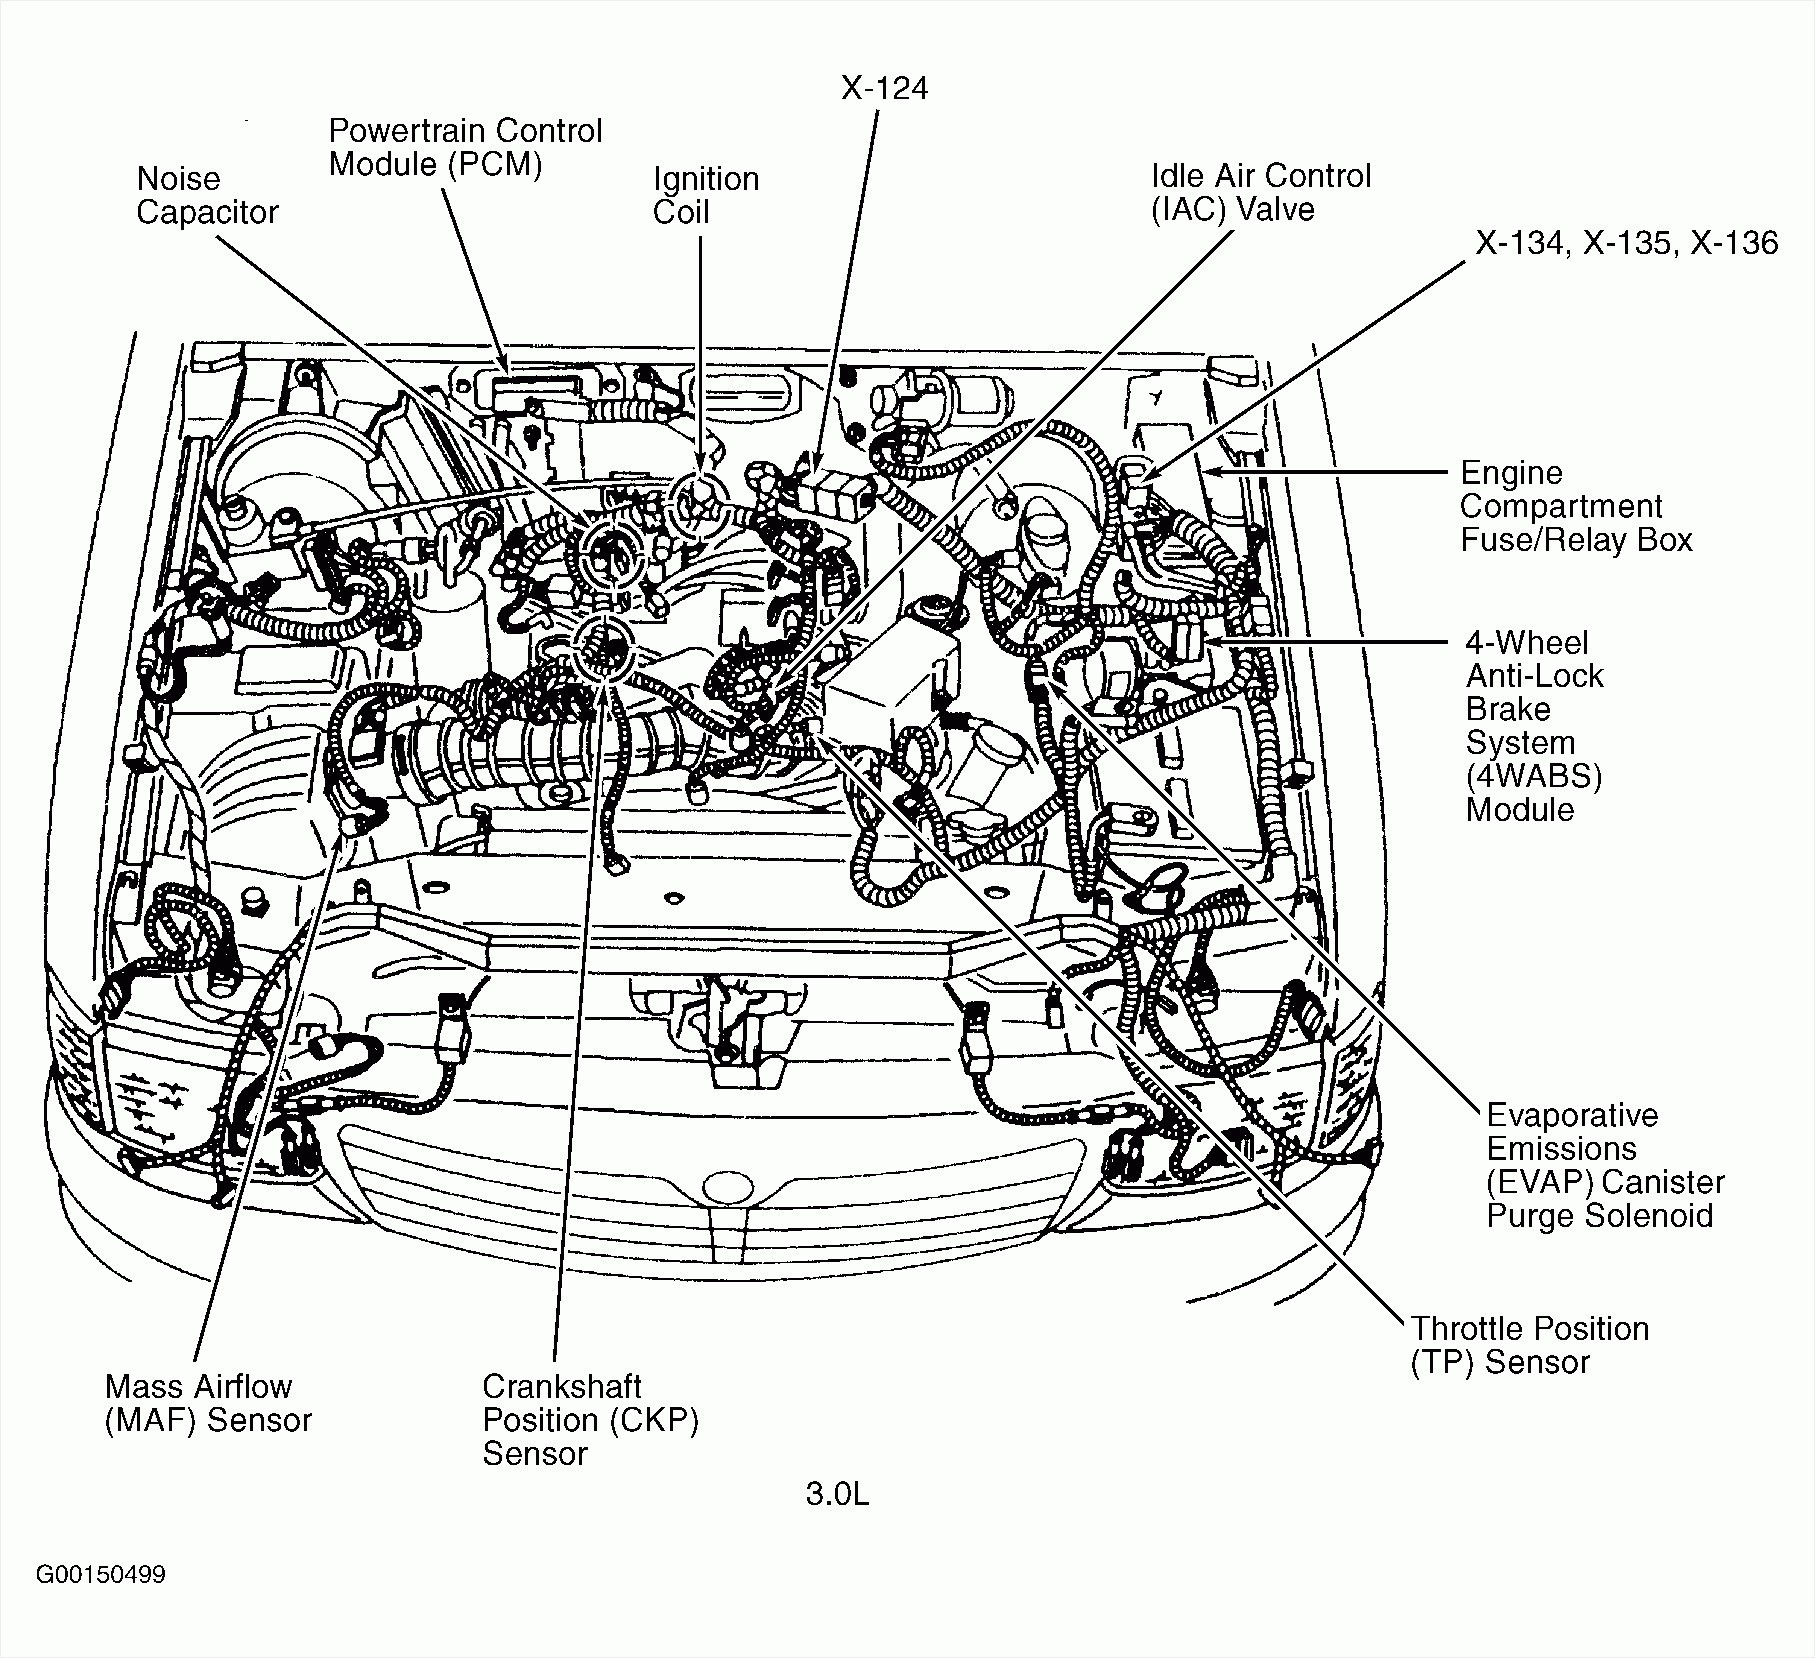 Mx5 Engine Bay Diagram: 2014 Ford Escape Rear Suspension Diagram At Galaxydownloads.co